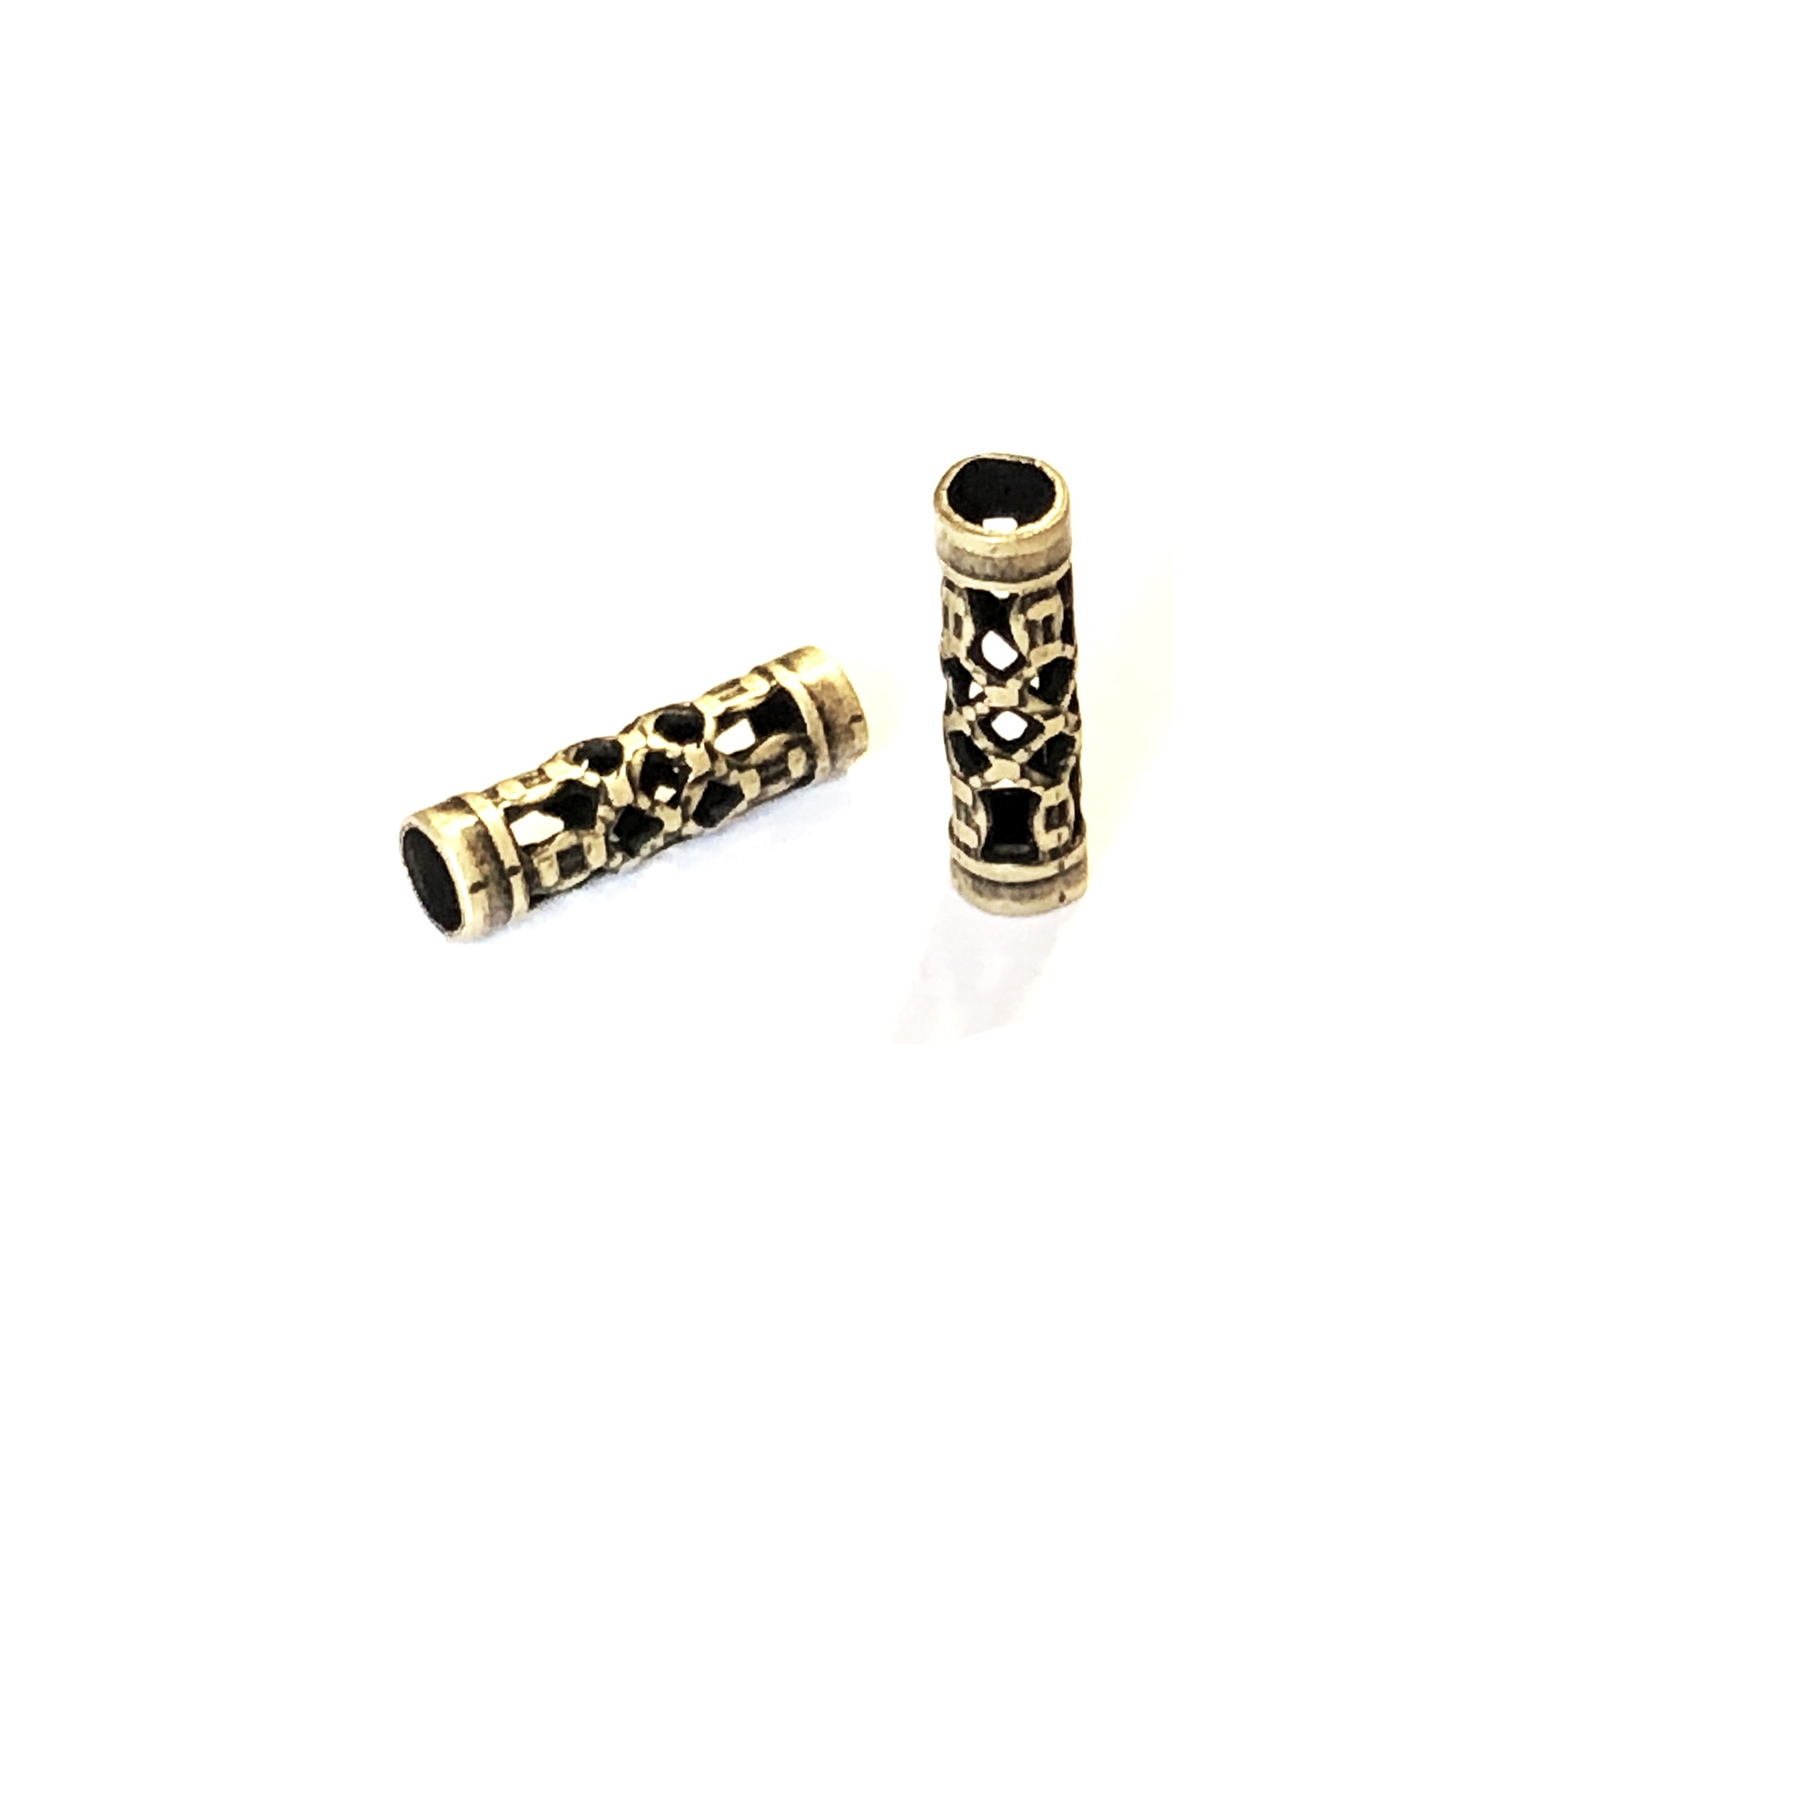 filigree tube beads, filigree beads, jewelry making, 0705, brass bead, filigree beads, brass metal beads, brass ox beads, designer findings, designer beads, steampunk art jewelry, beading supplies, vintage jewelry supplies,